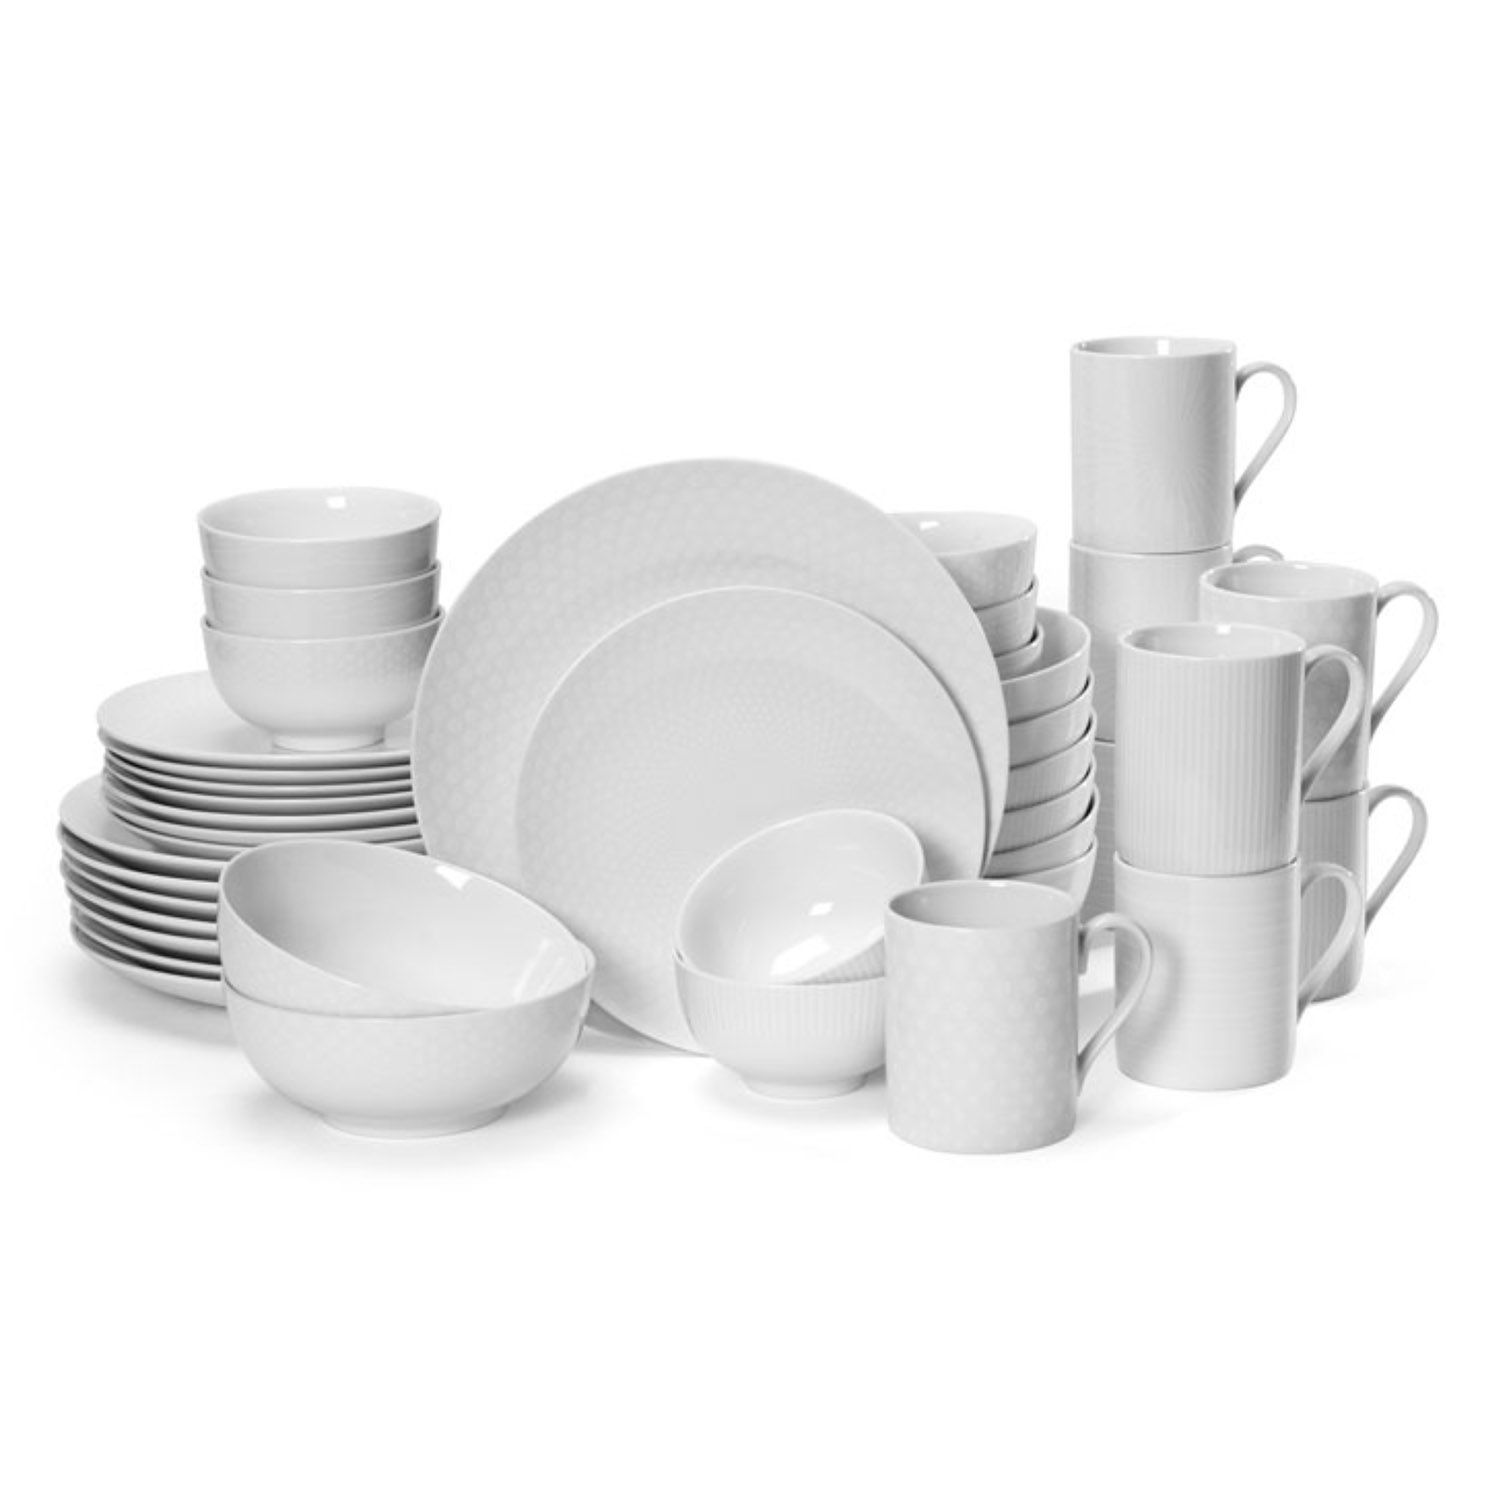 sc 1 st  Kohlu0027s & Mikasa Cheers White 40-pc. Dinnerware Set